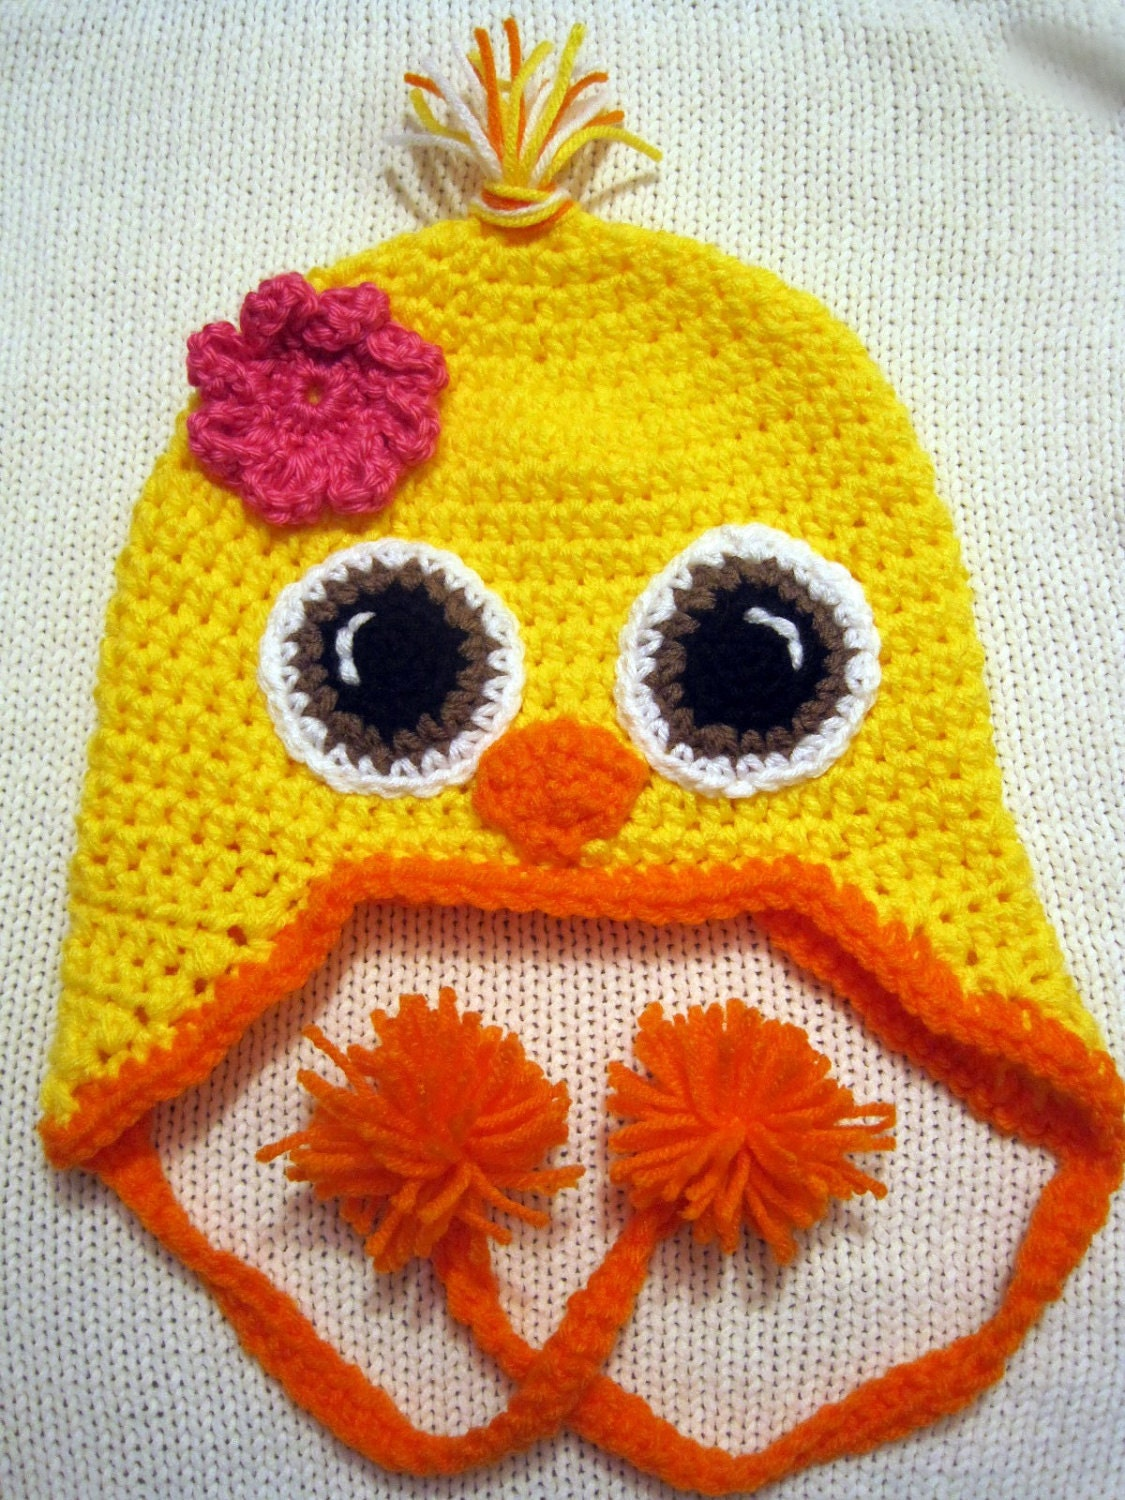 Free Crochet Pattern For Baby Chick Hat : Yellow baby chick crochet hat with brown eyes